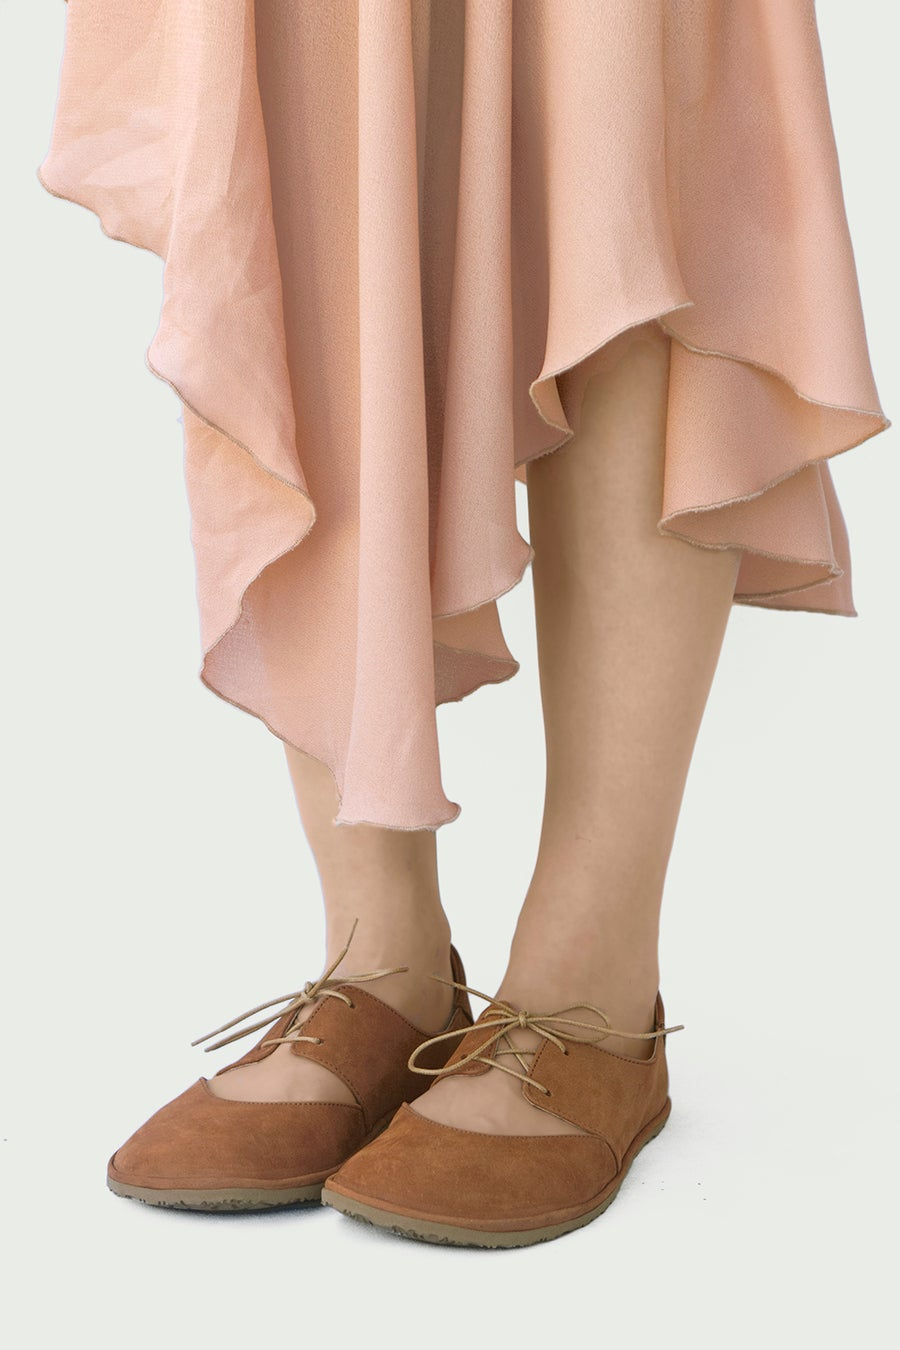 Image of Derby Ballet flats in Ginger Nubuck